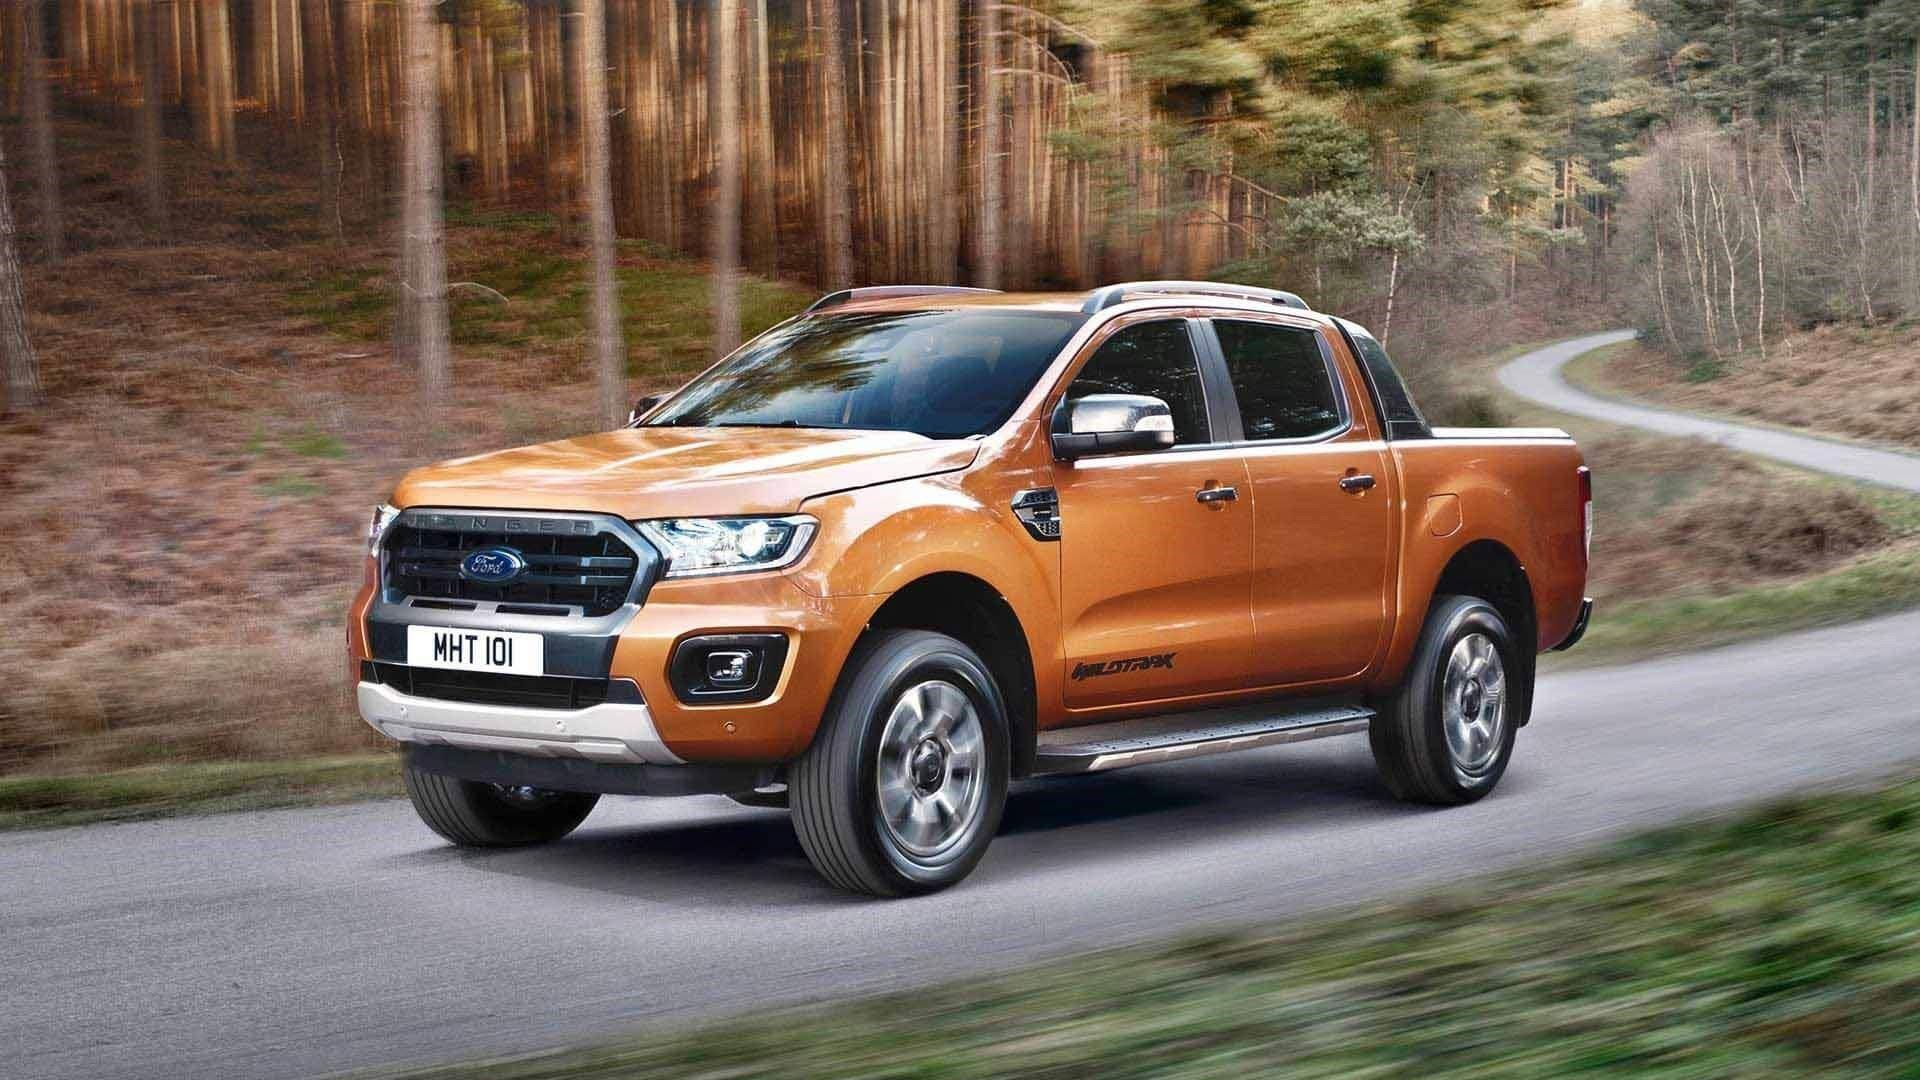 Fourth generation Ford Ranger   ALTTAG: Ranger Mk4